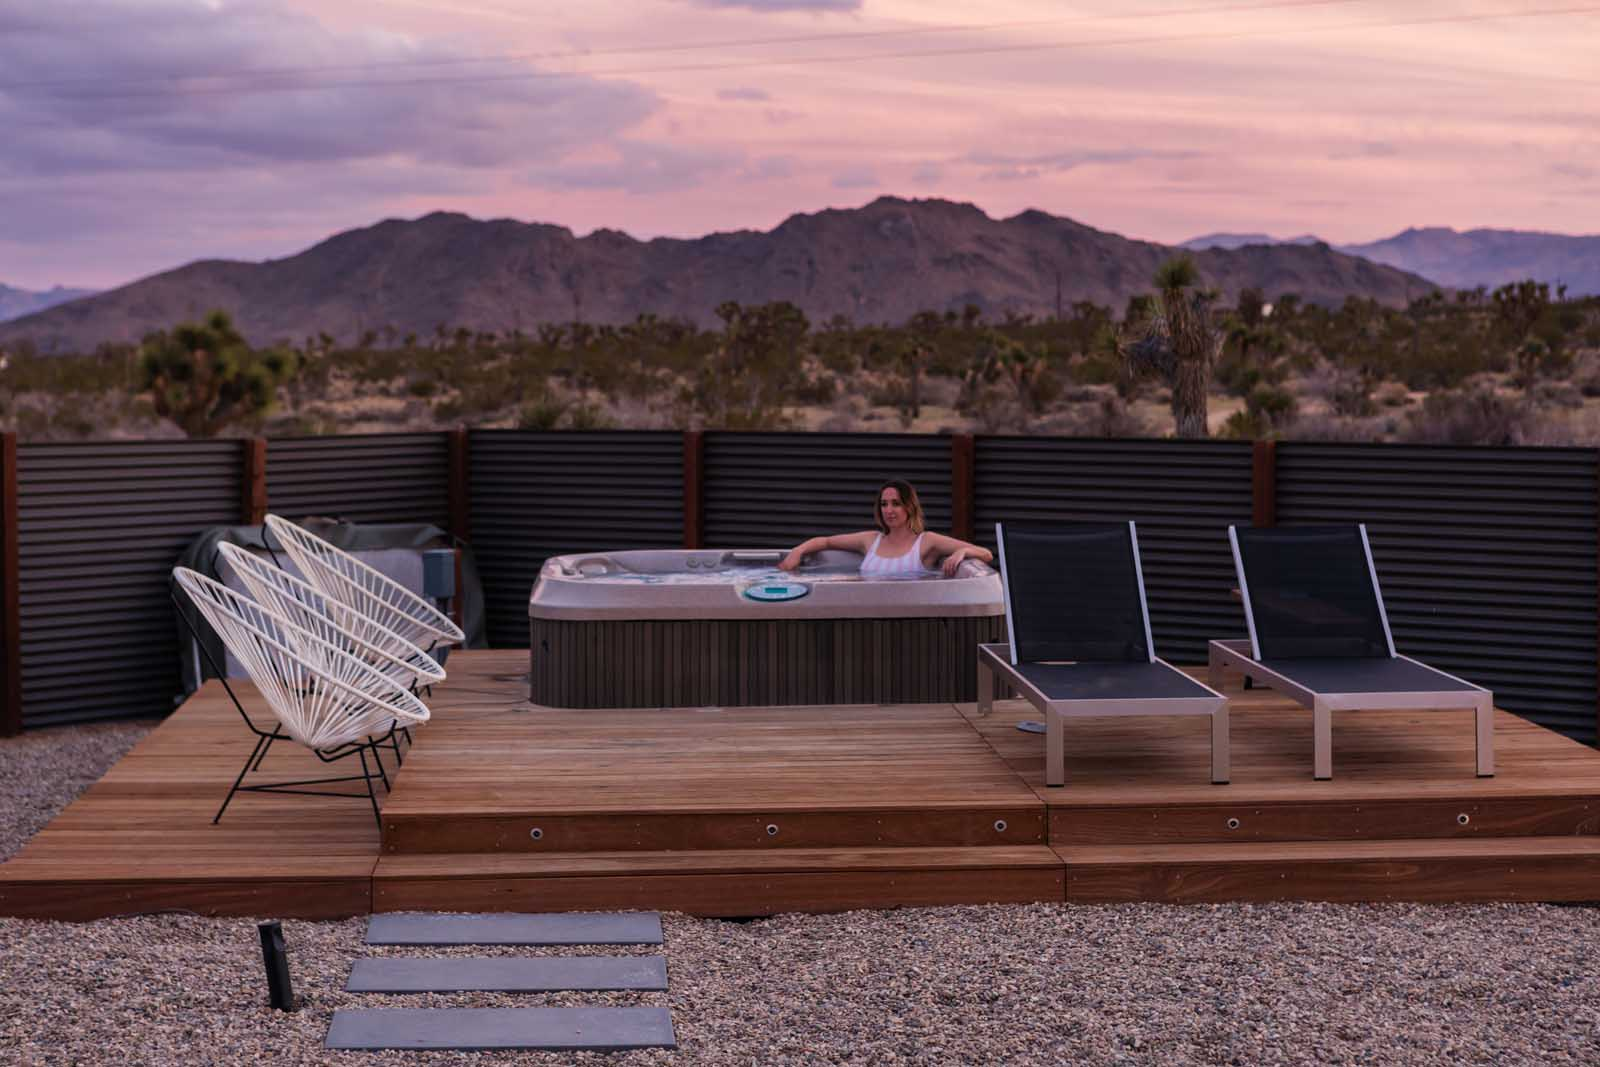 Jacuzzi at sunset in Joshua Tree Airbnb